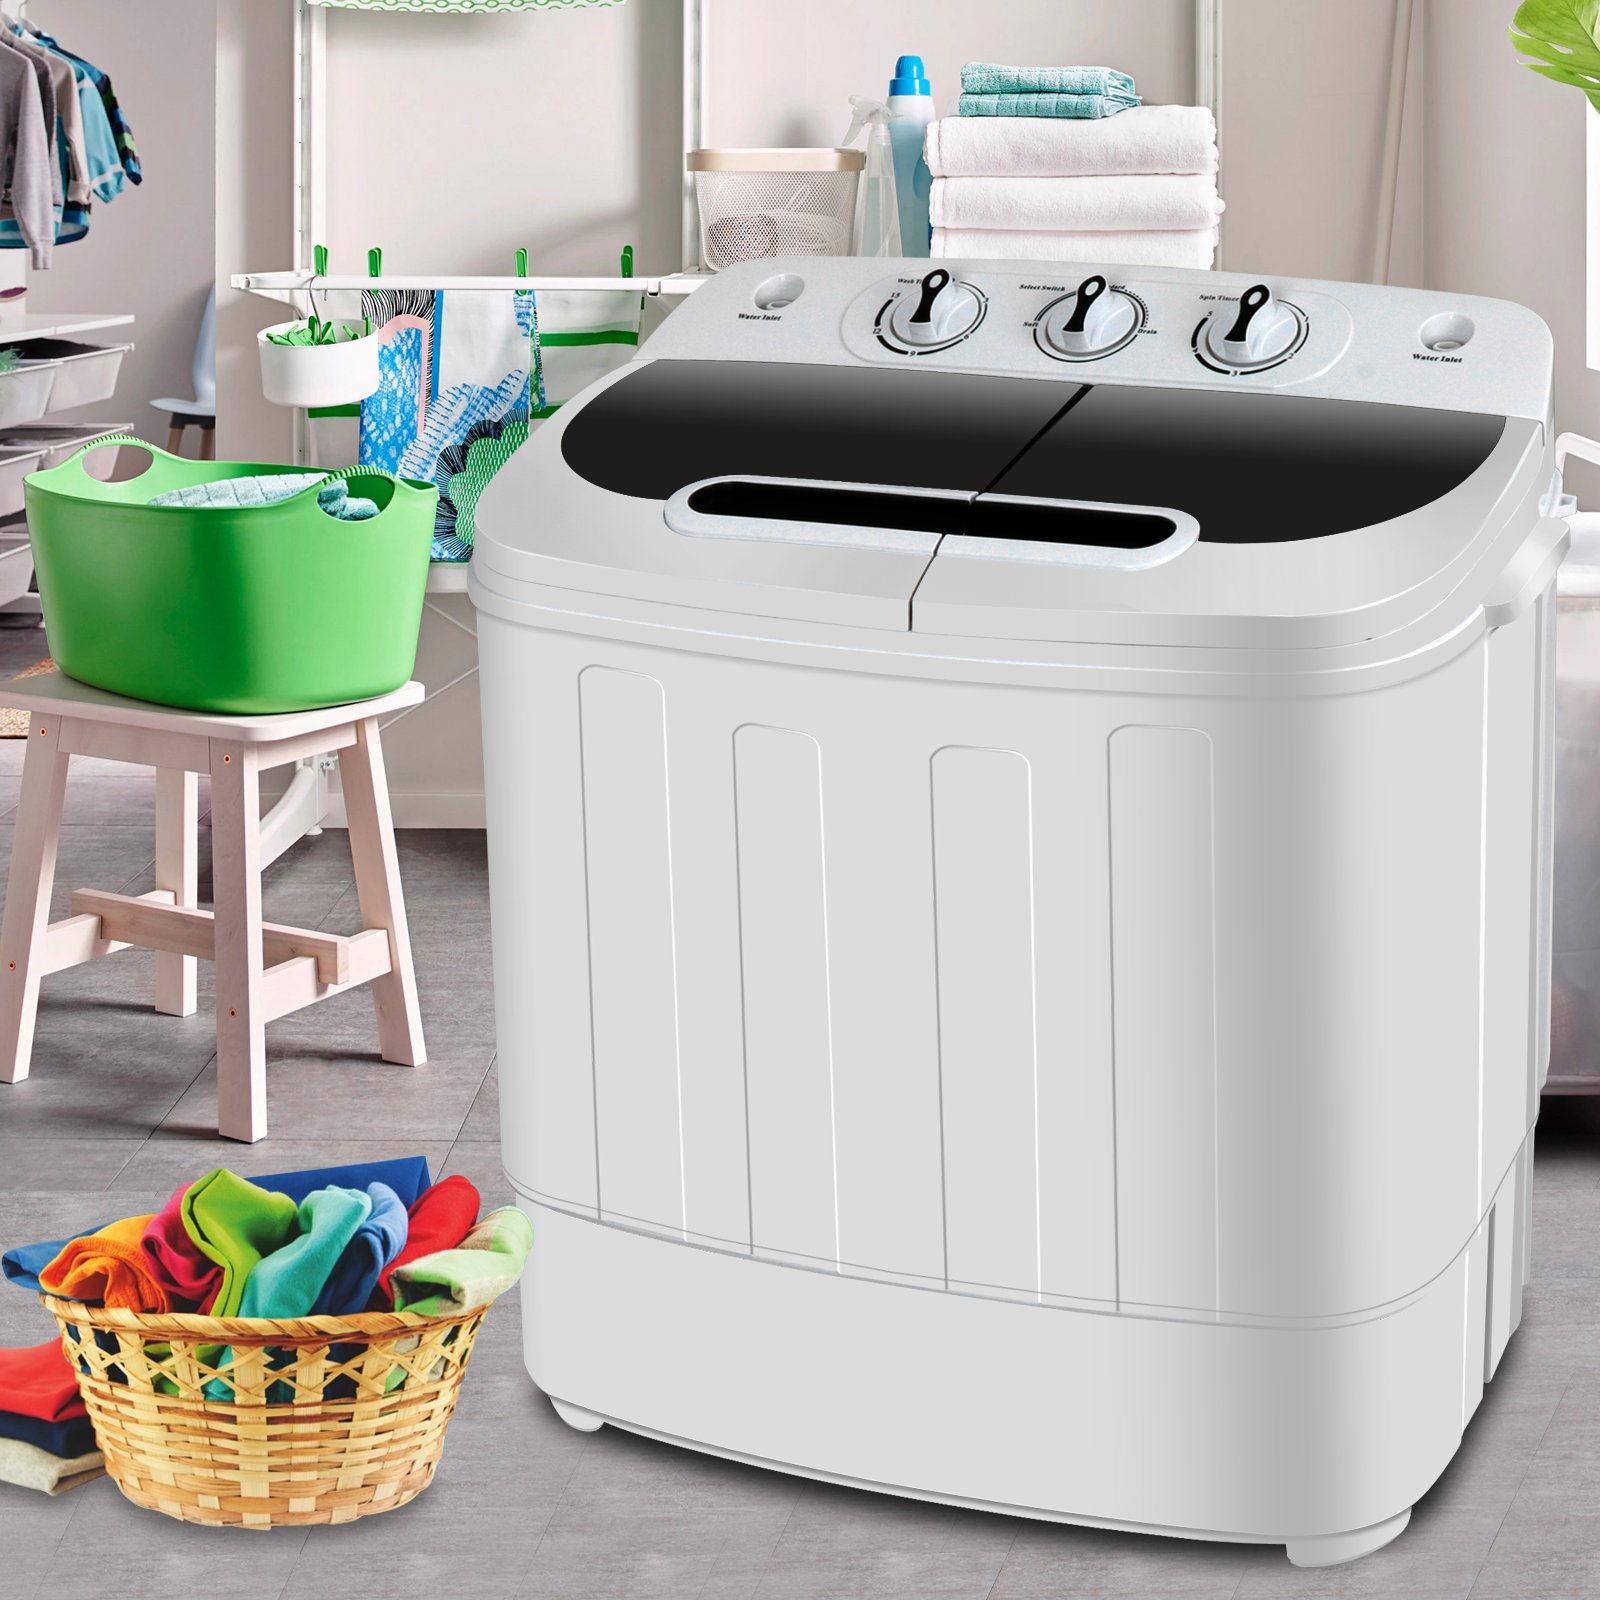 Mini Twin Tub Compact Portable Washing Machine